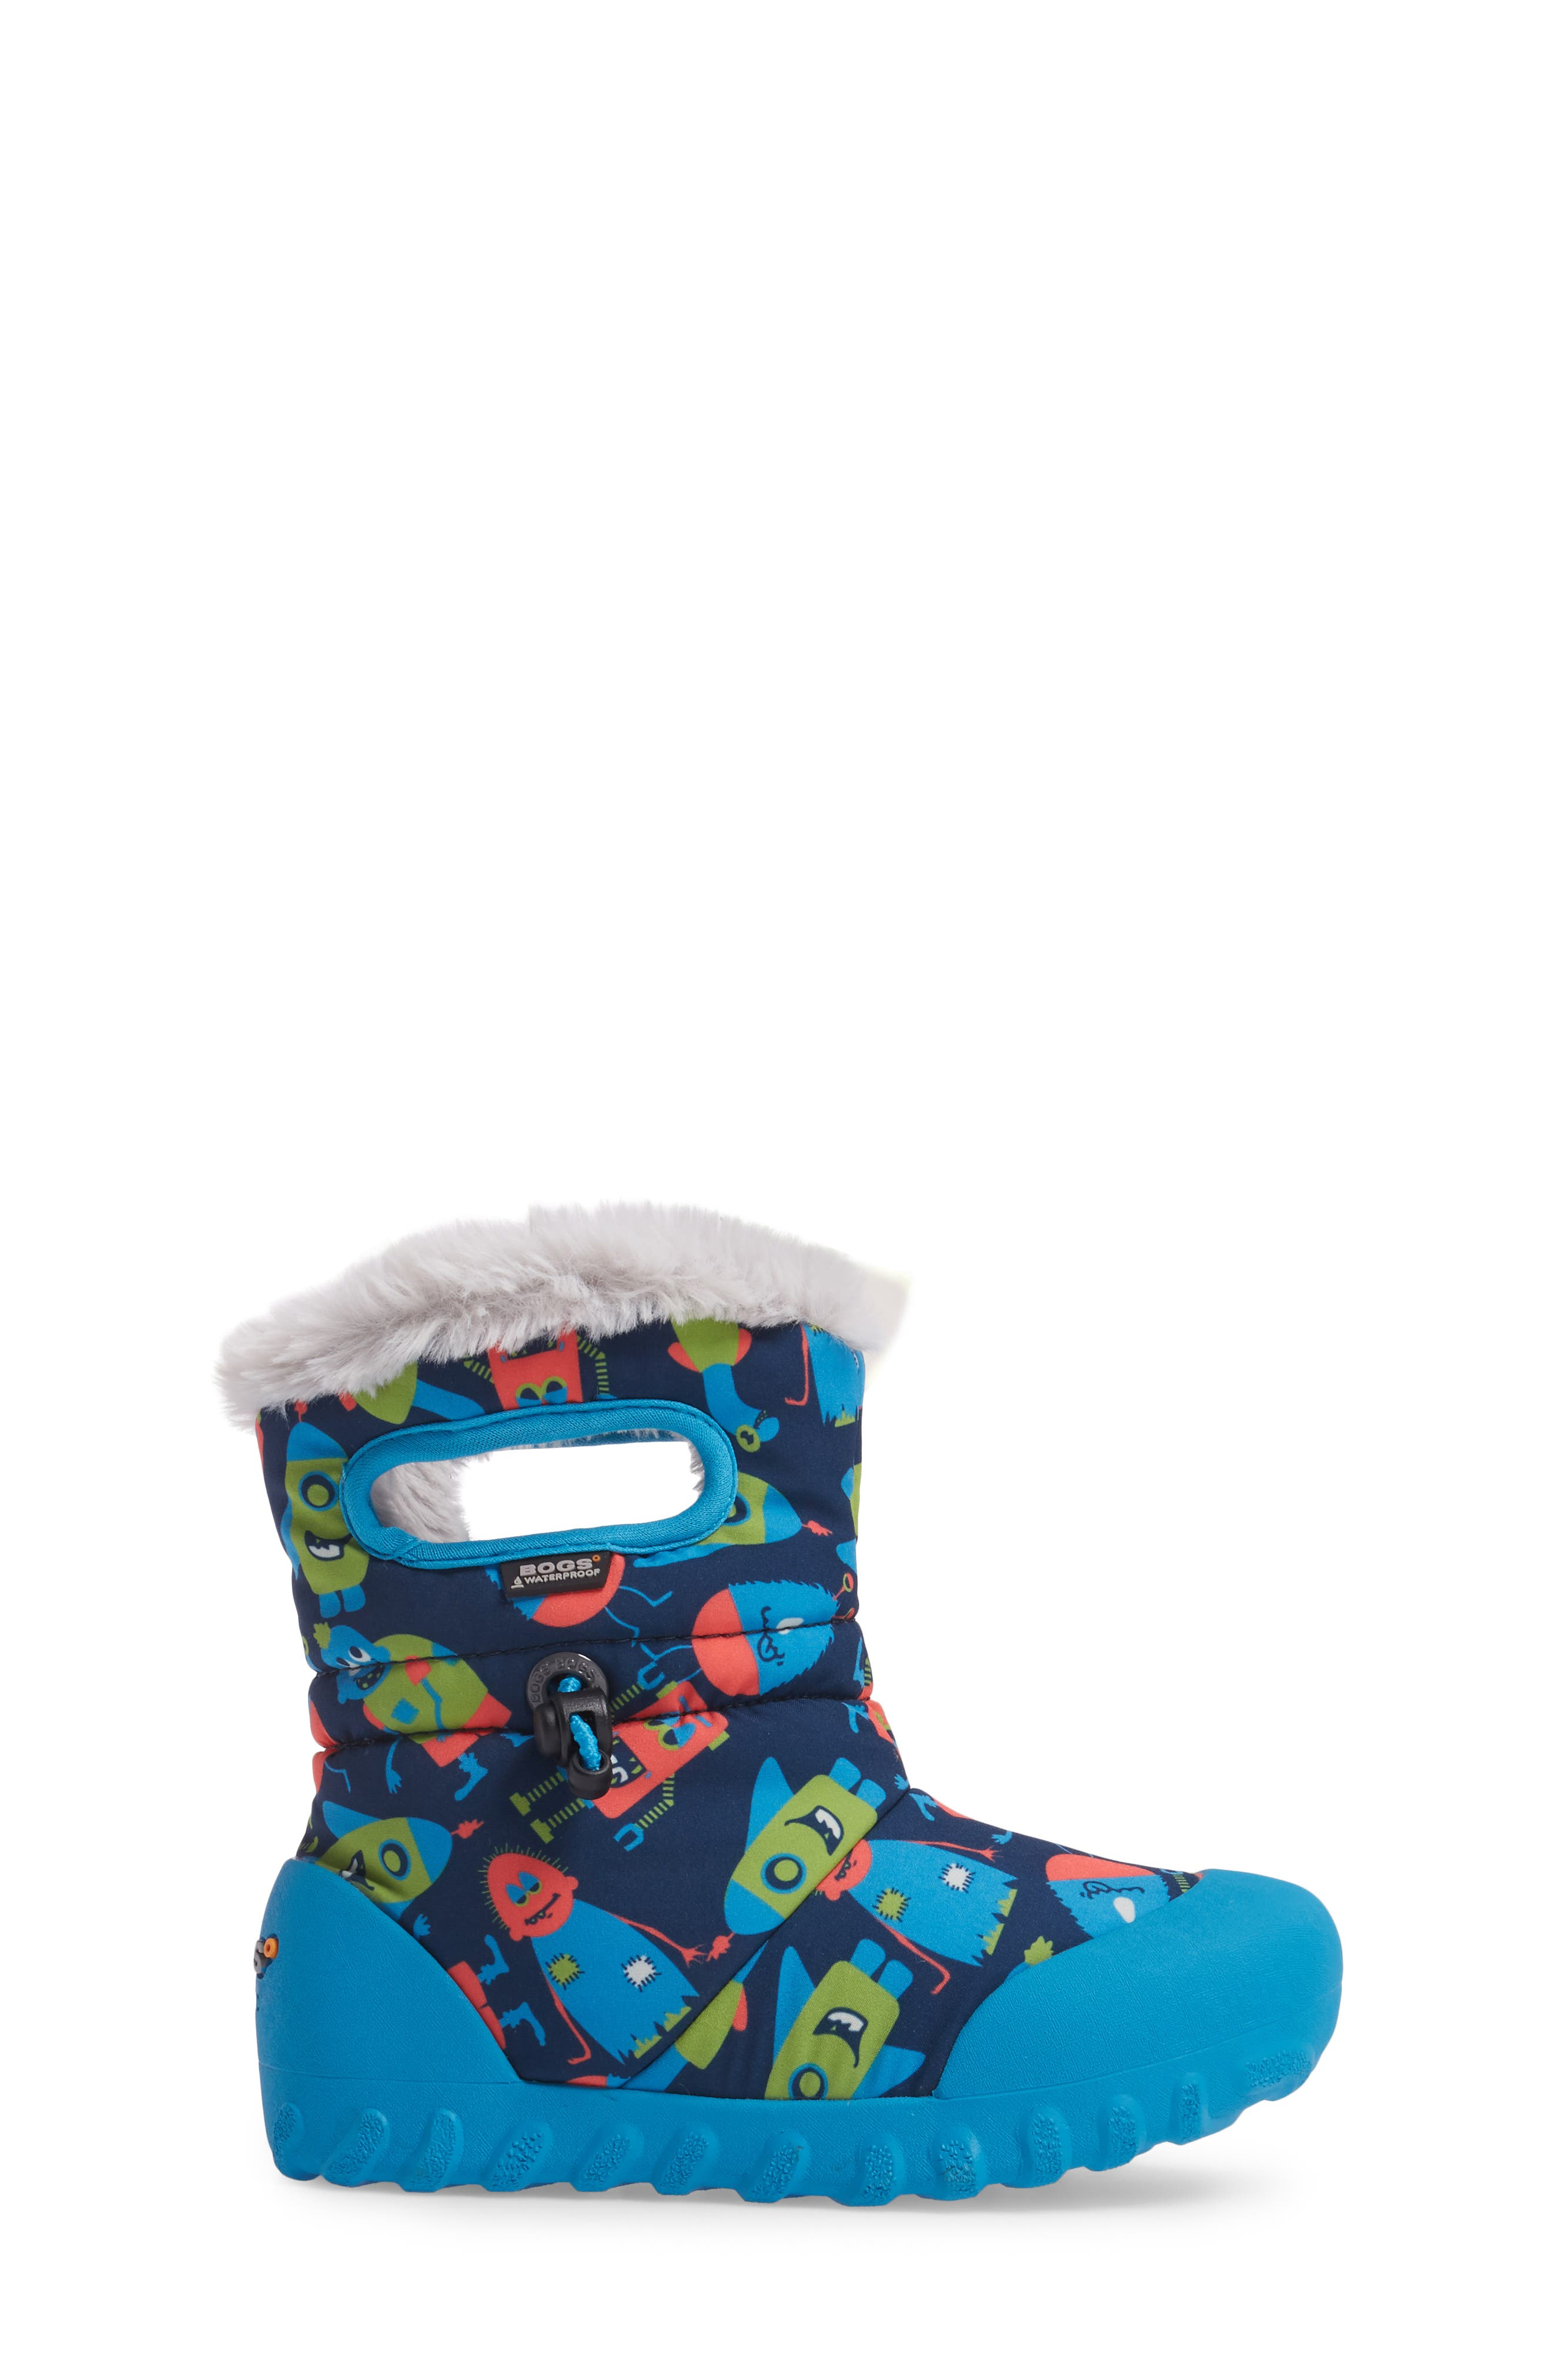 Alternate Image 3  - Bogs B-MOC Monsters Waterproof Insulated Faux Fur Boot (Toddler & Little Kid)